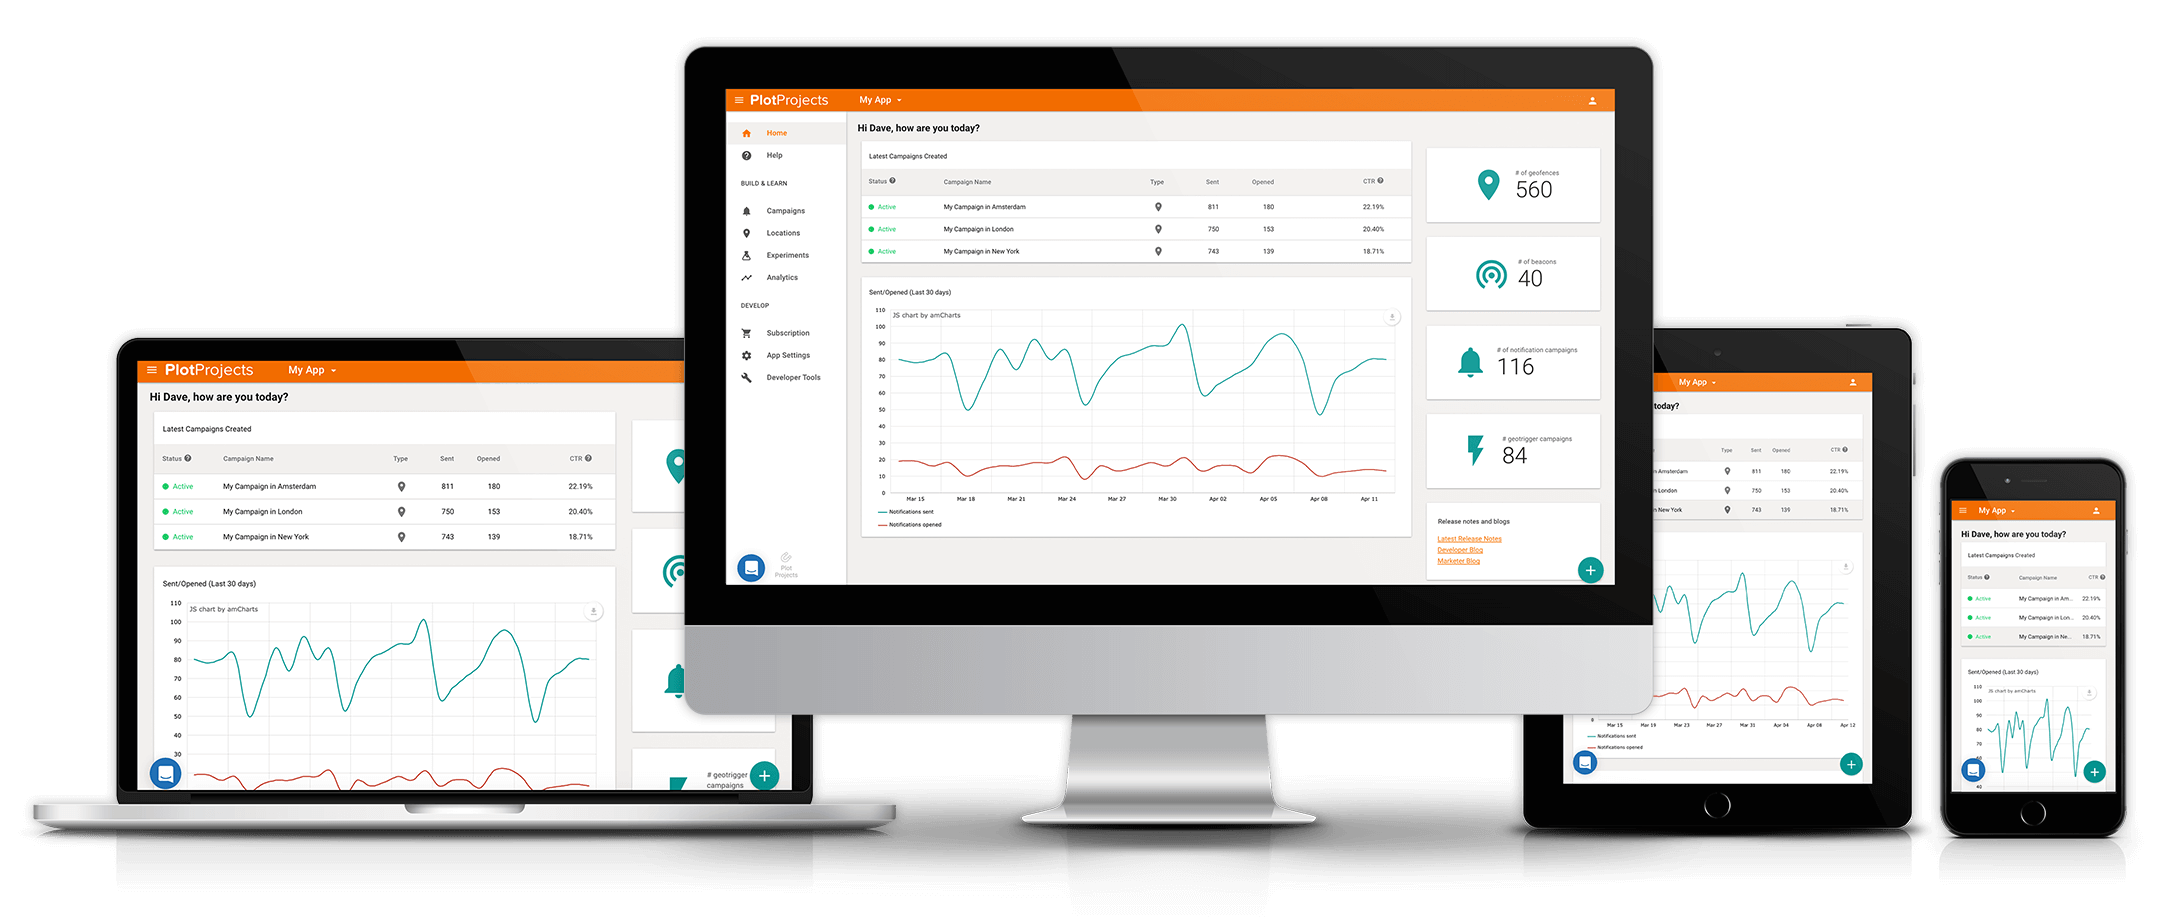 Plot Projects Responsive Dashboard